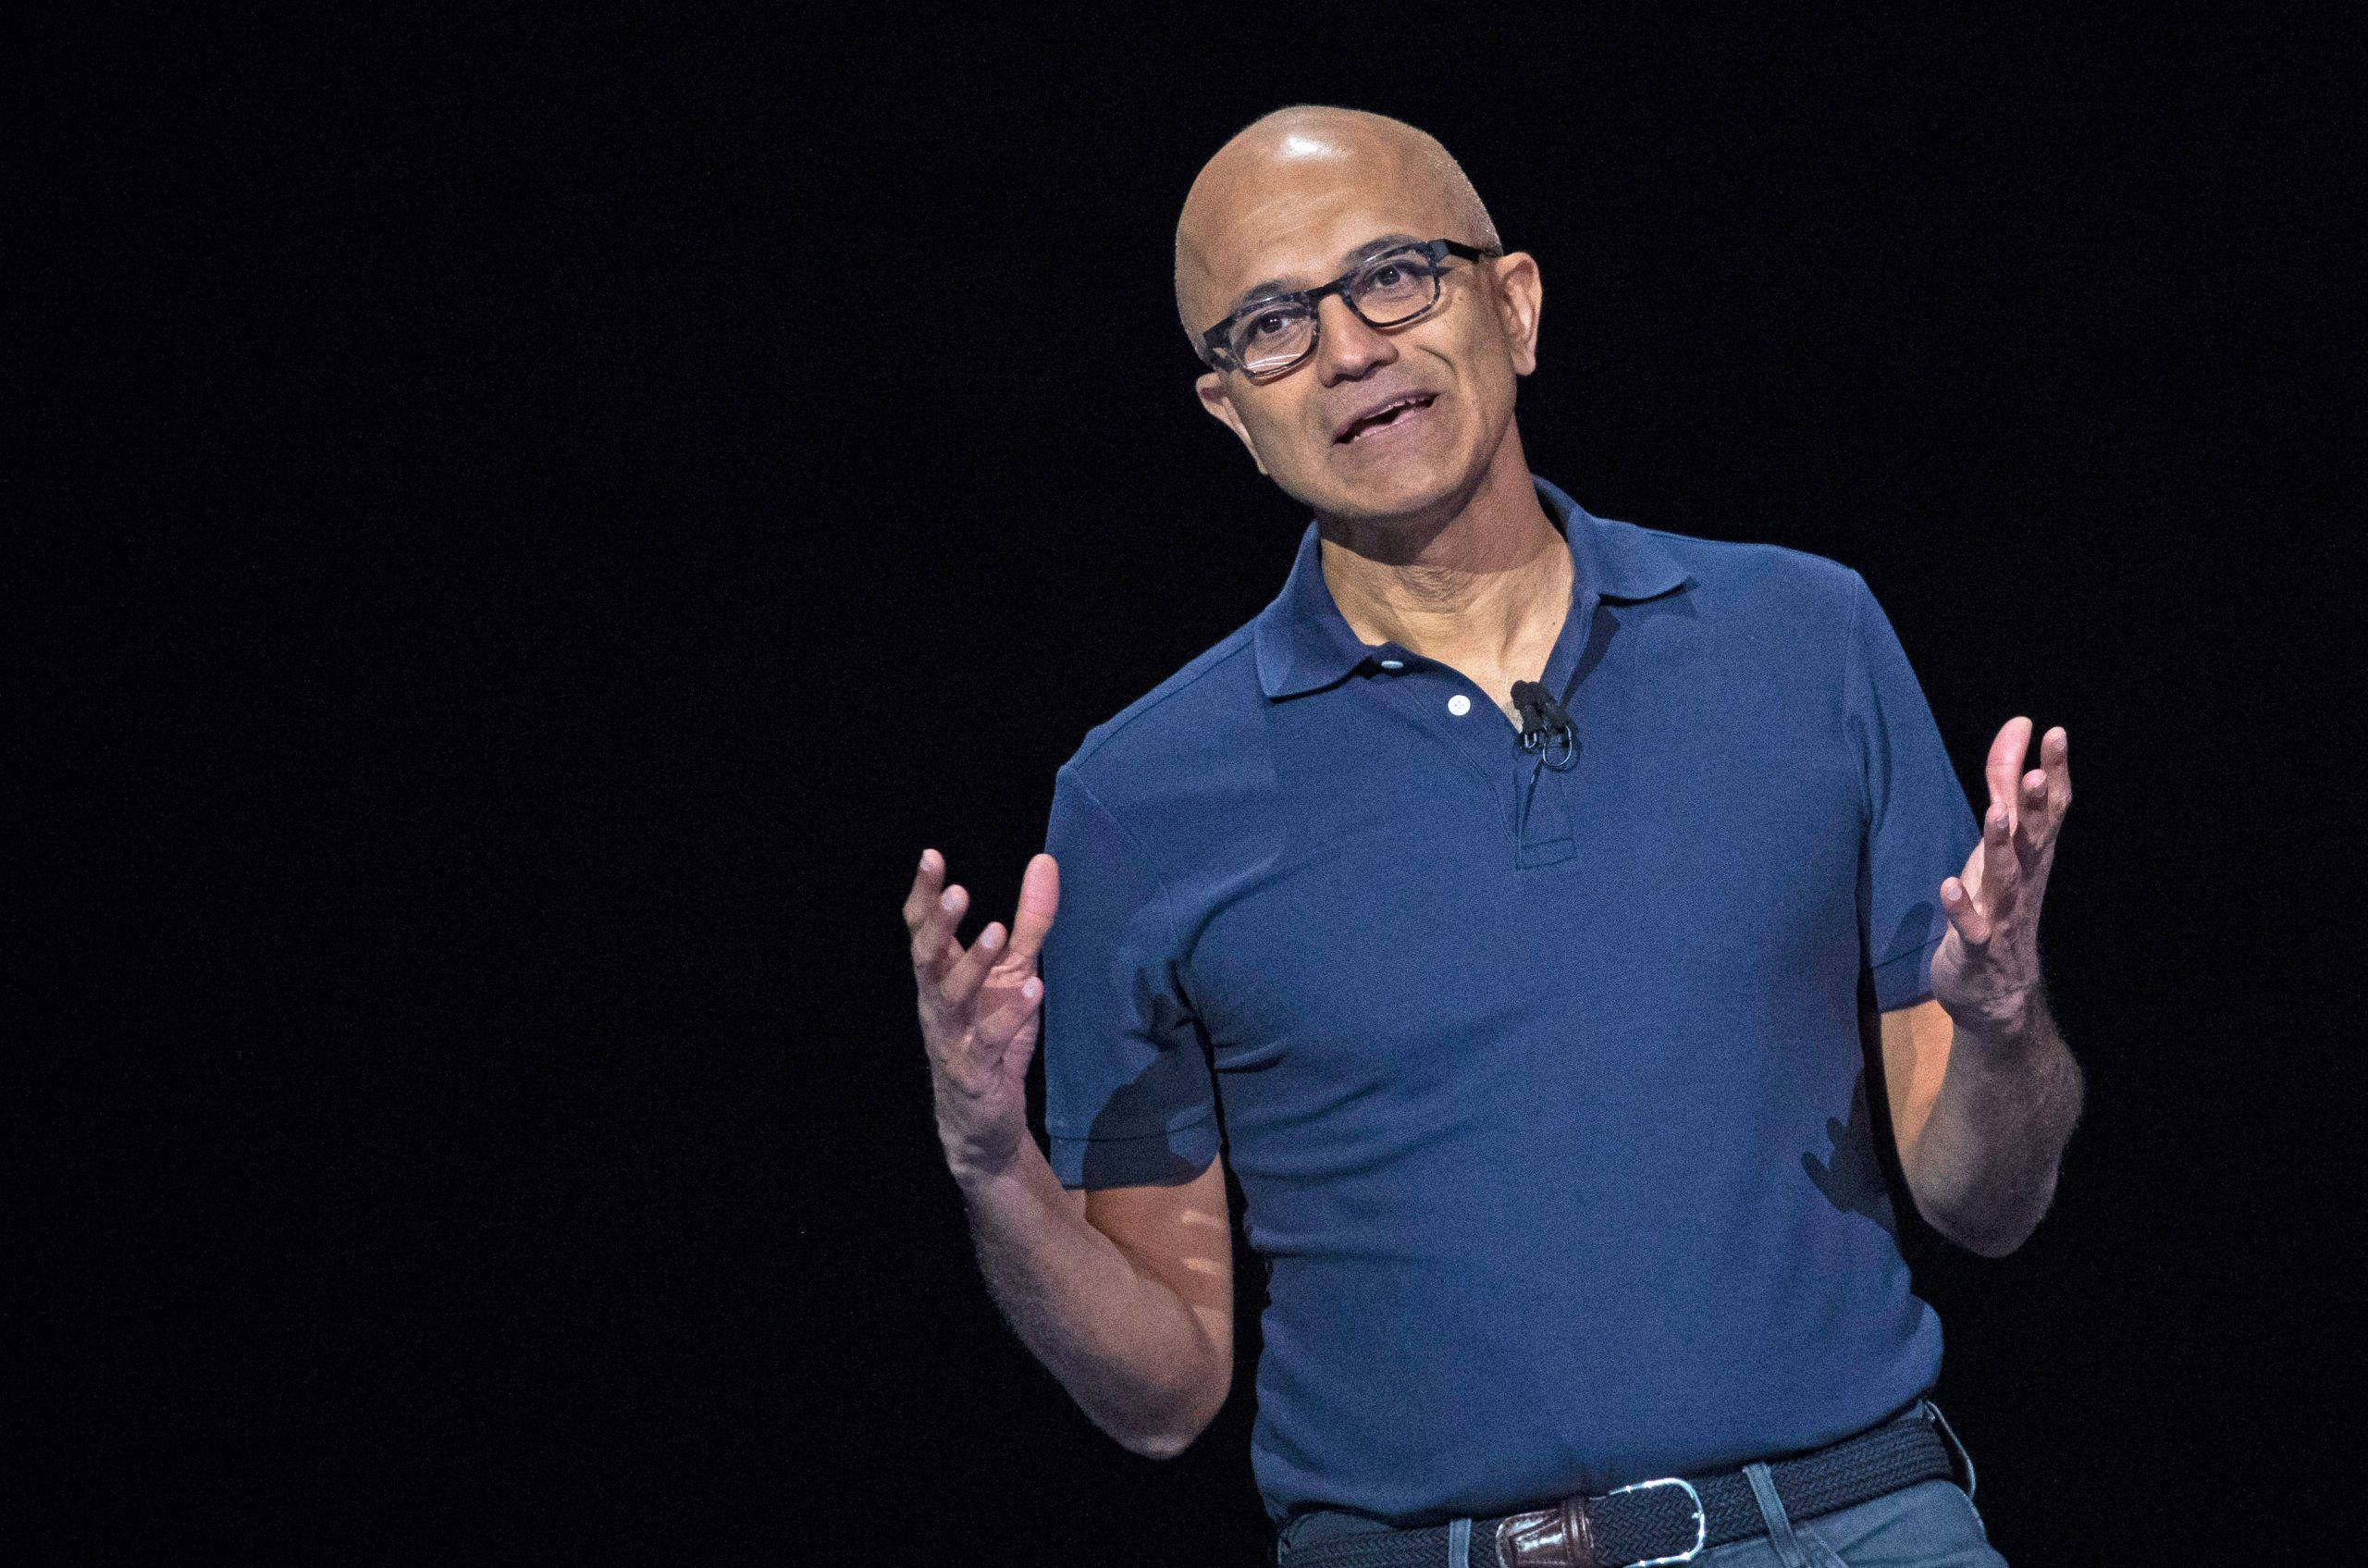 Microsoft will double its Black senior leadership by 2025 | DeviceDaily.com